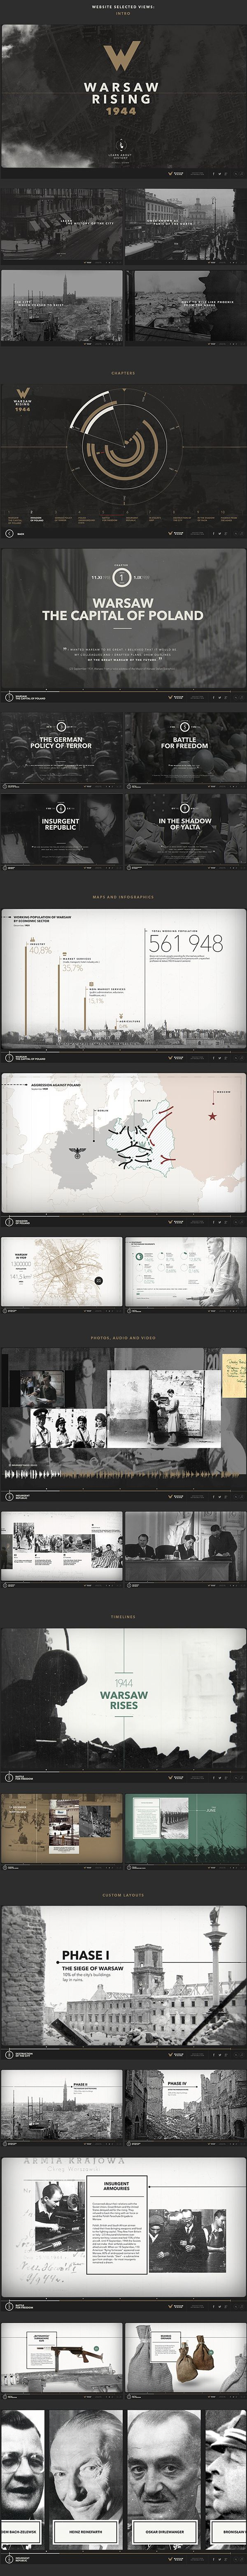 Warsaw Rising on Behance — Designspiration